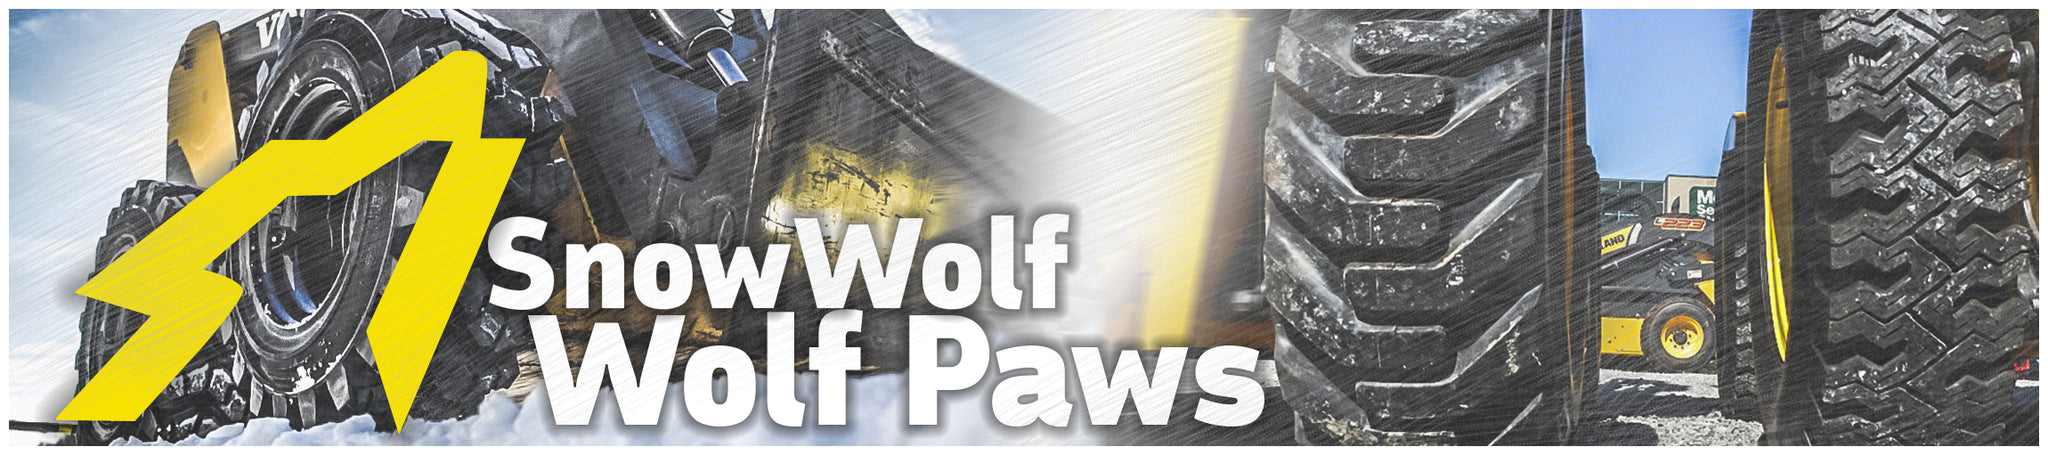 Snow Wolf Wolf Paws for Skid Steer Loaders